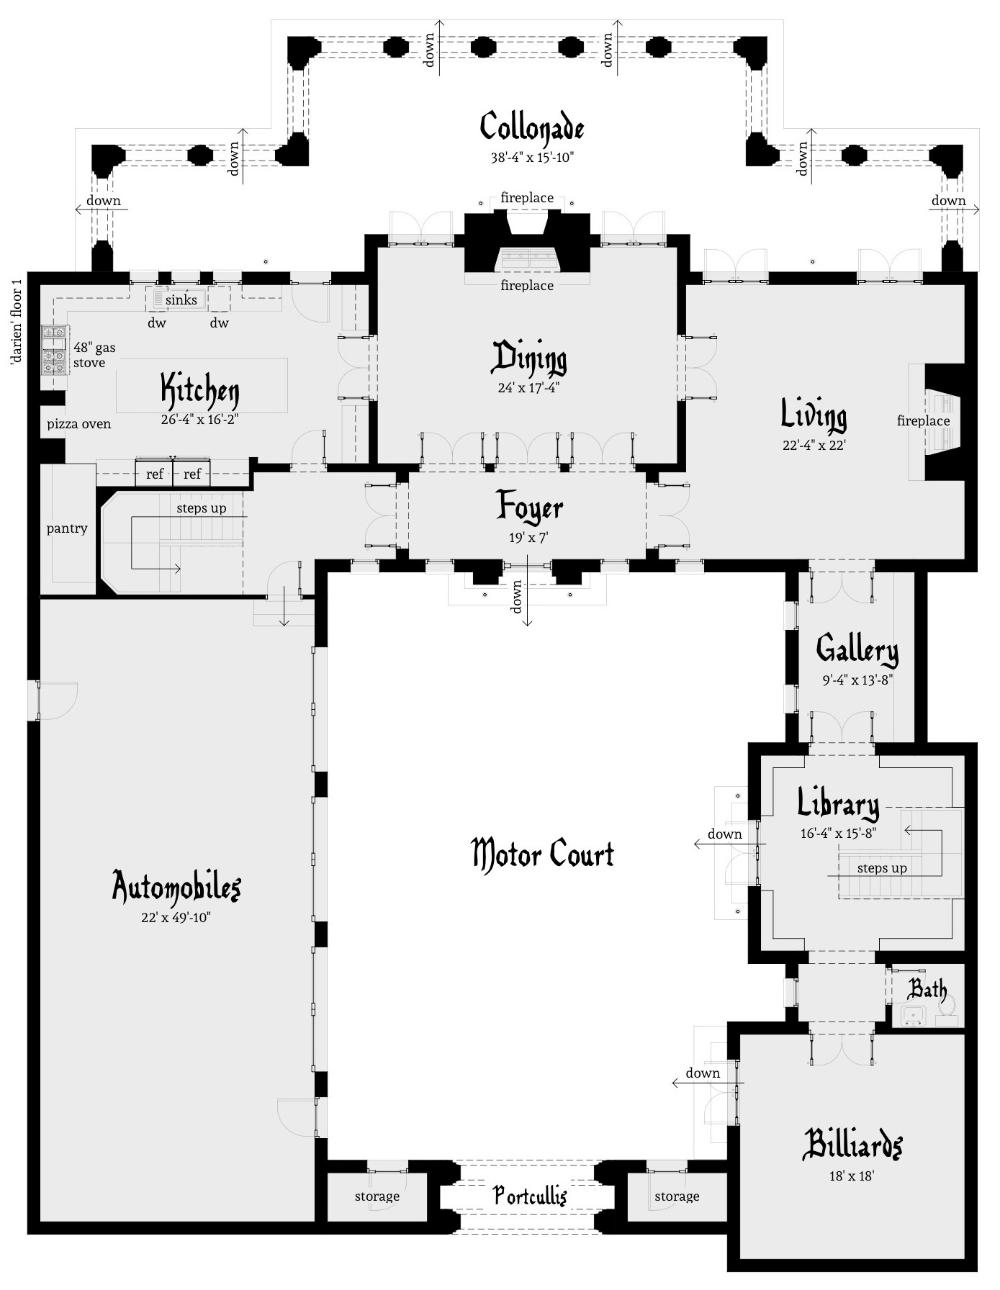 Gated Castle Tower Home 5 Bedrooms Tyree House Plans In 2020 Castle House Plans Castle Plans House Plans